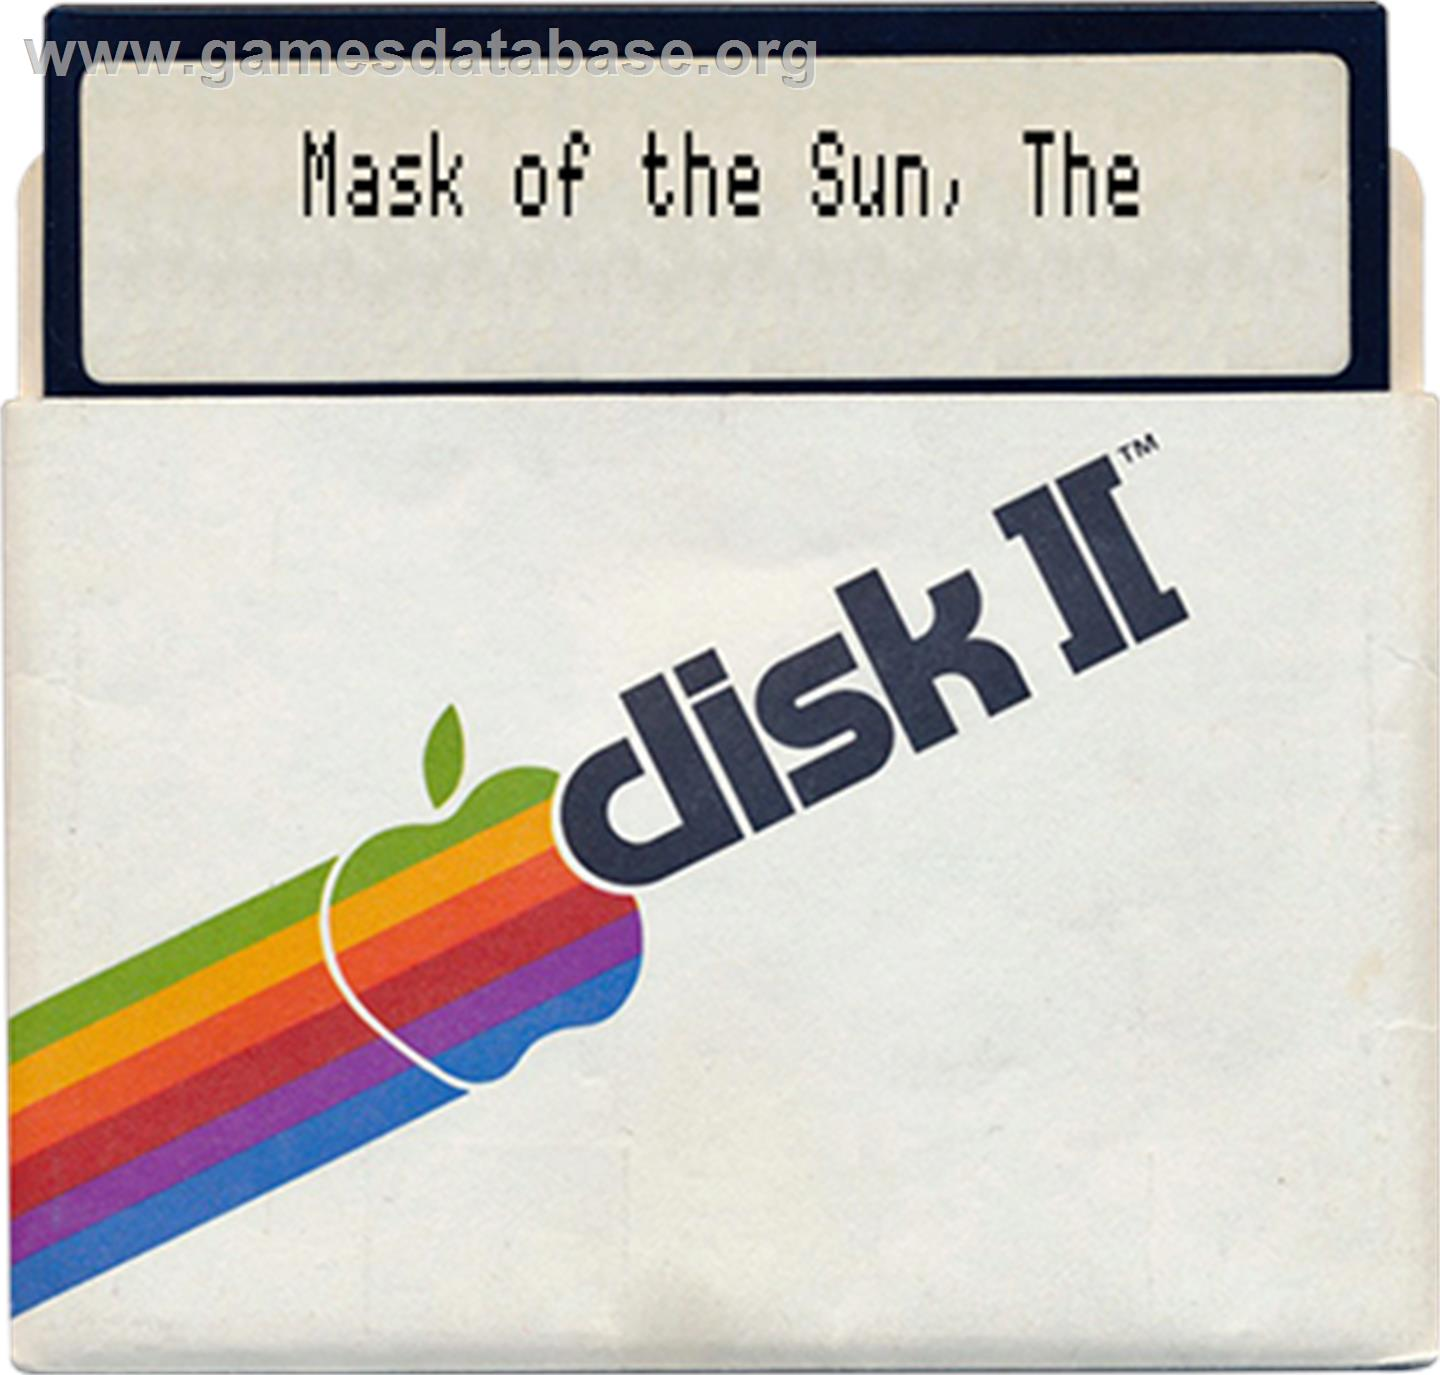 The Mask of the Sun - Apple II - Artwork - Disc